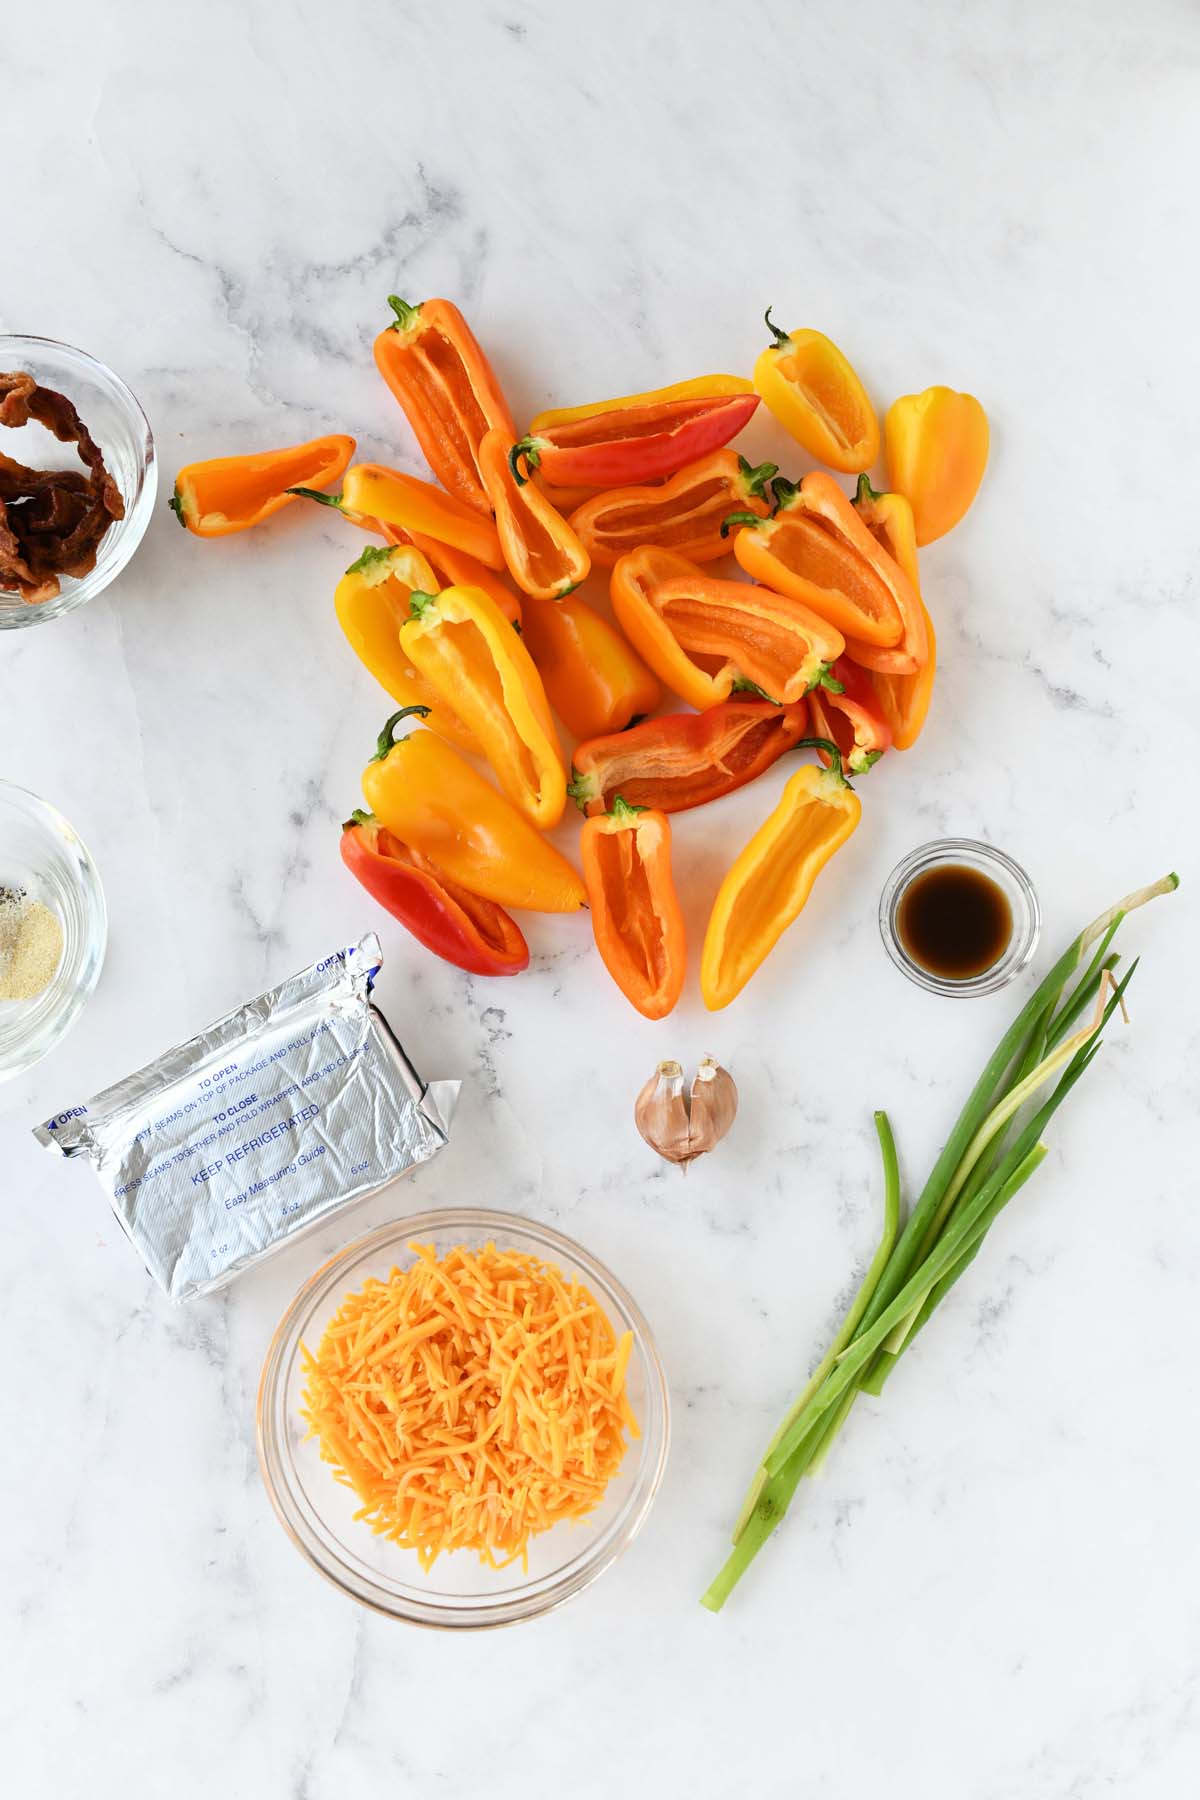 Sweet pepper popper ingredients on a white table.